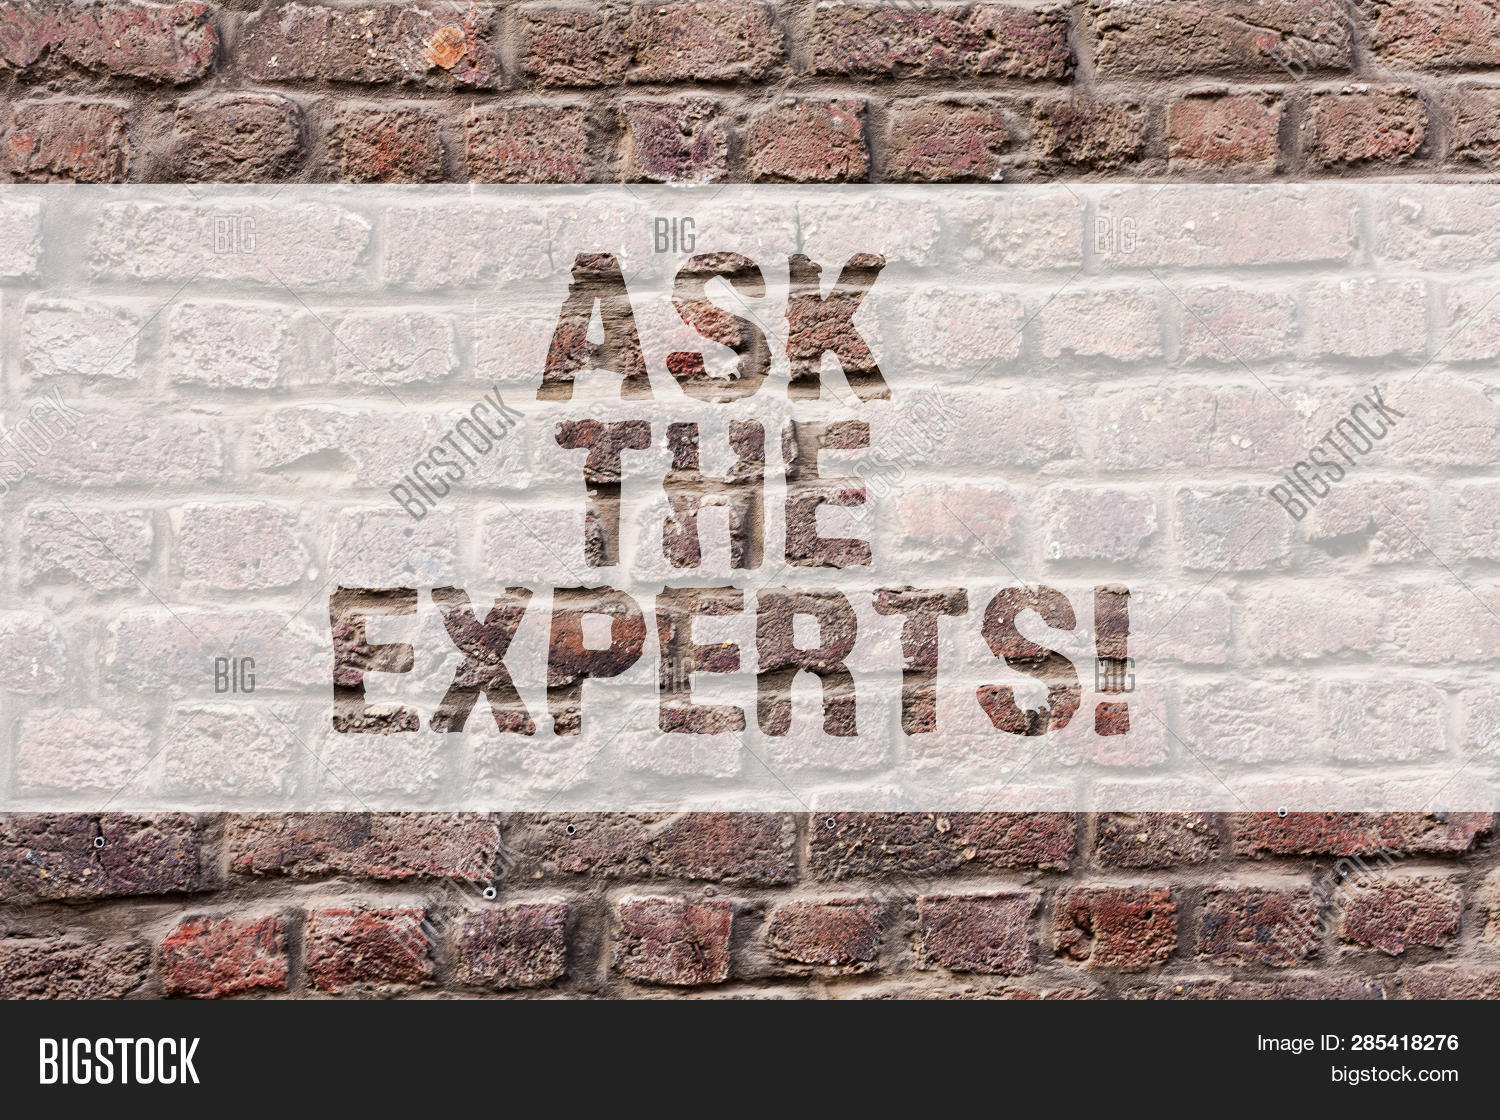 advice,analysisagement,answer,ask,assist,assistance,assurance,business,commerce,communication,compliance,consult,consultant,consulting,customer,education,excellent,experience,experienced,expert,expertise,financial,guide,help,helpdesk,idea,info,information,instructions,intelligence,know,knowhow,knowledge,leadership,learning,offer,opinion,problem,professional,quality,question,service,skill,solution,specialist,success,support,wisdom